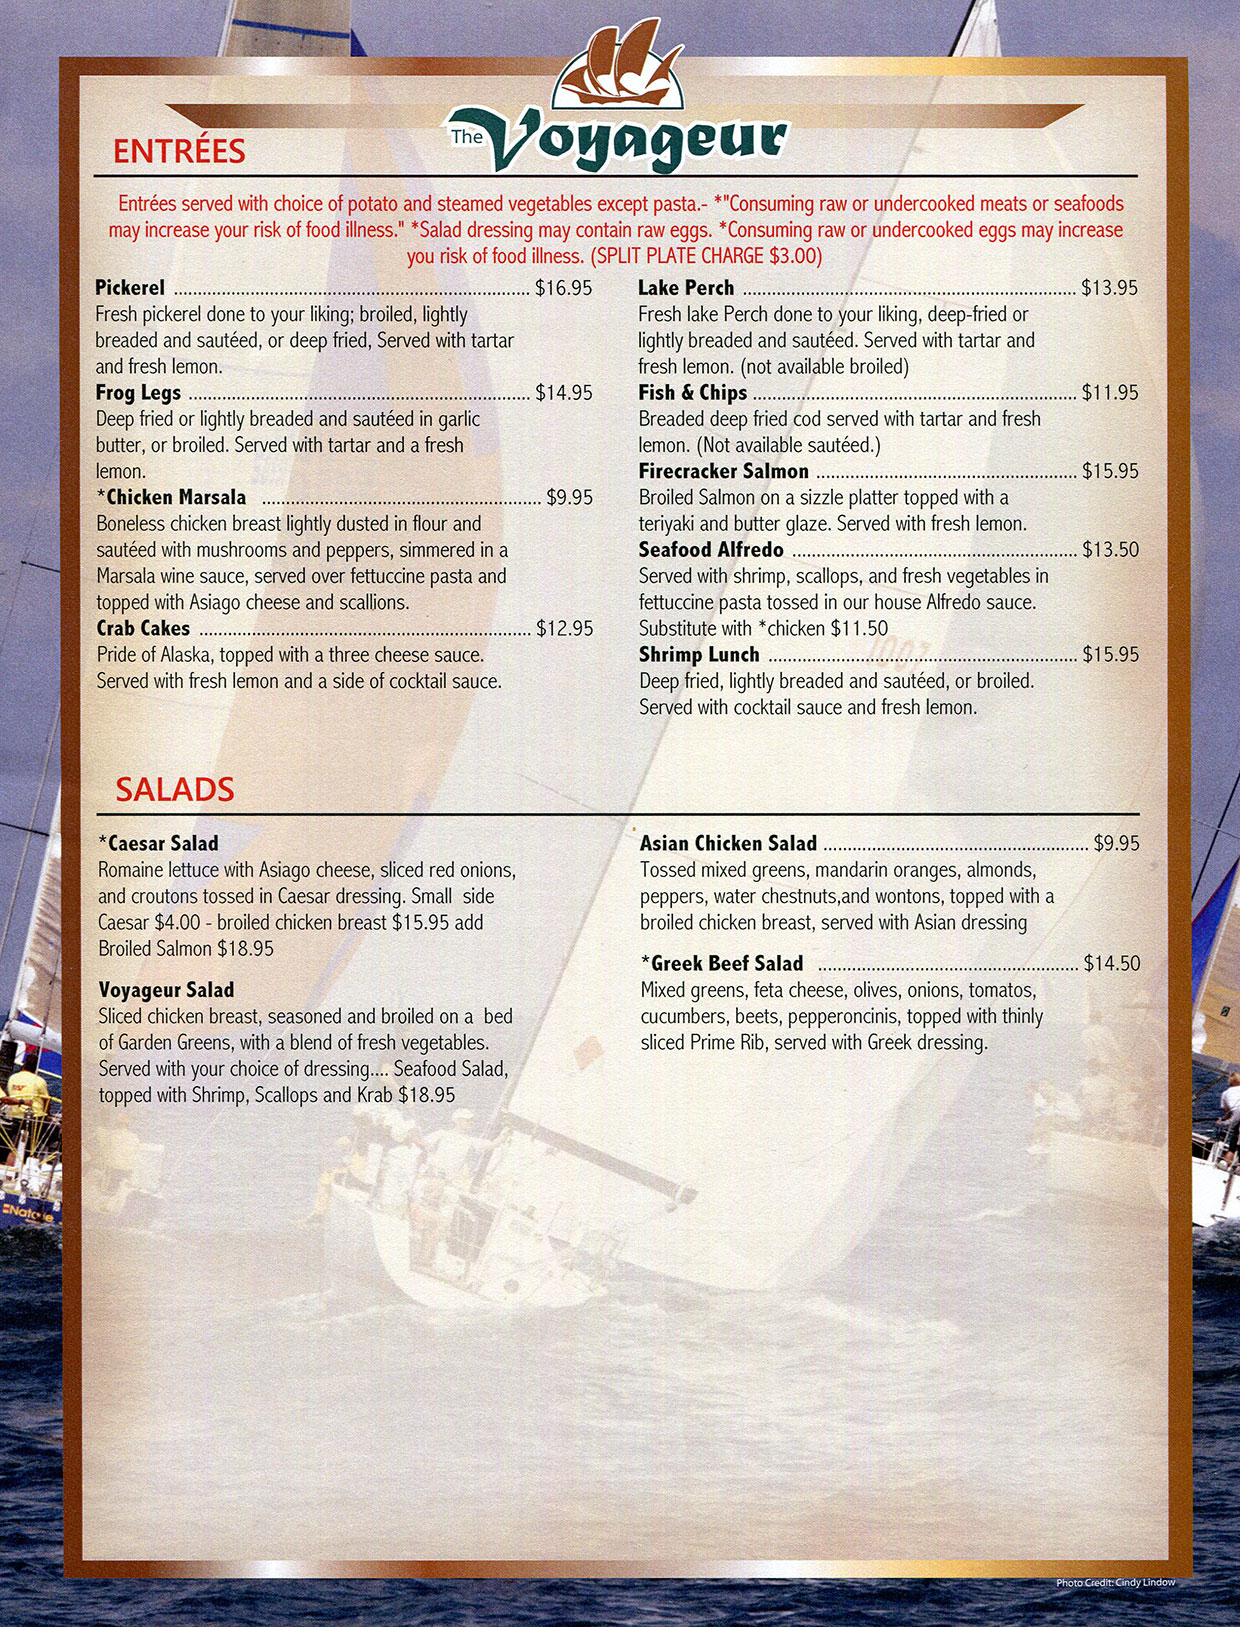 Lunch menu at The Voyageur